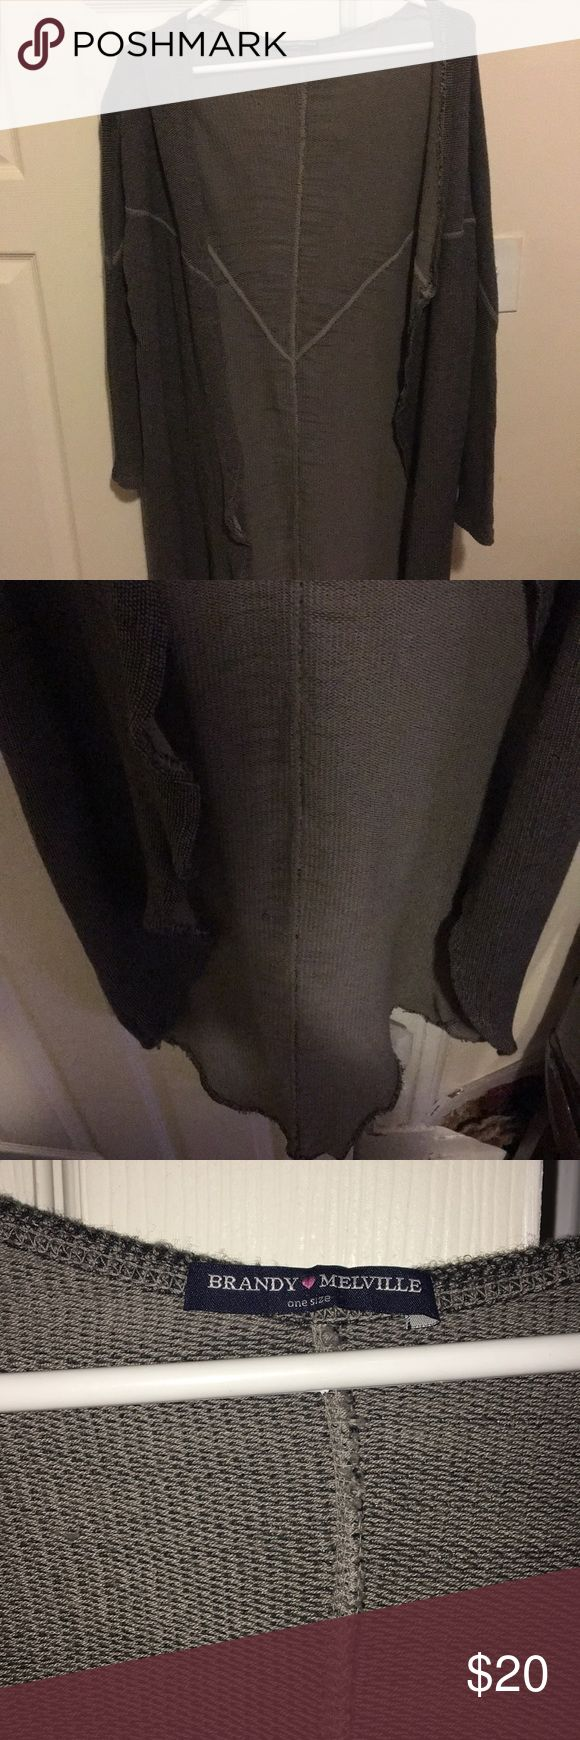 Brandy Melville Cardigan Brandy Melville extra long open front cardigan. Only worn once! Brandy Melville Sweaters Cardigans